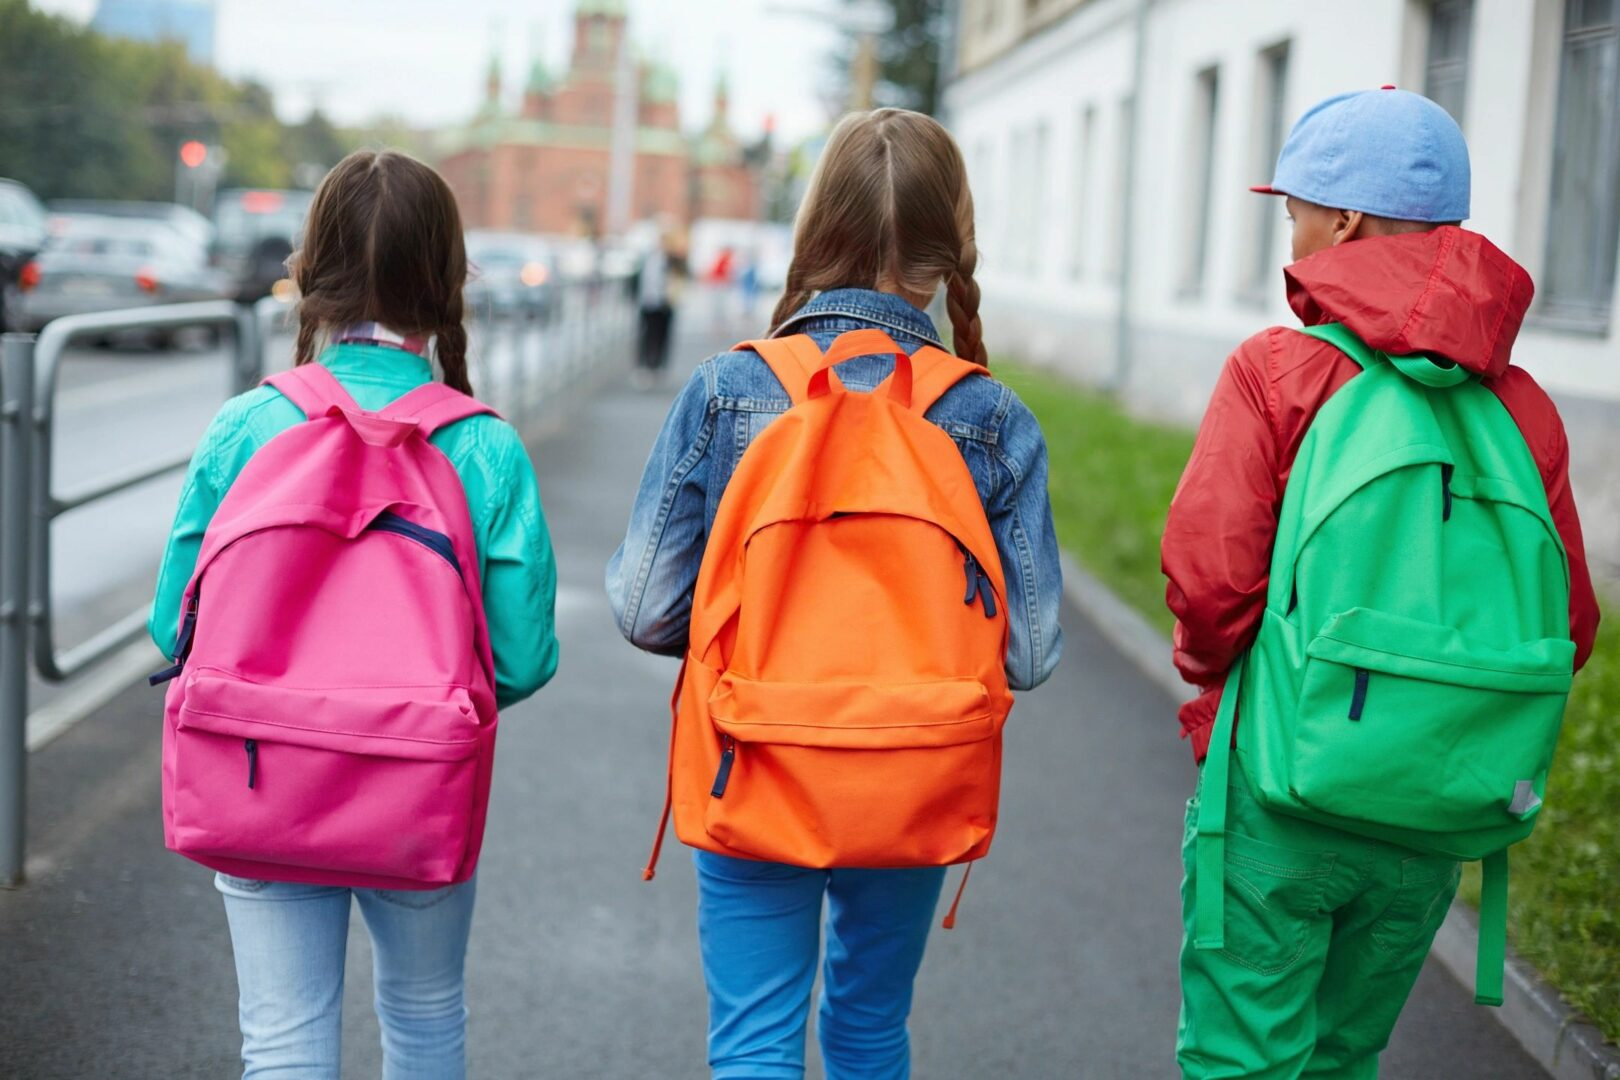 Back view three children wearing backpacks in different colors